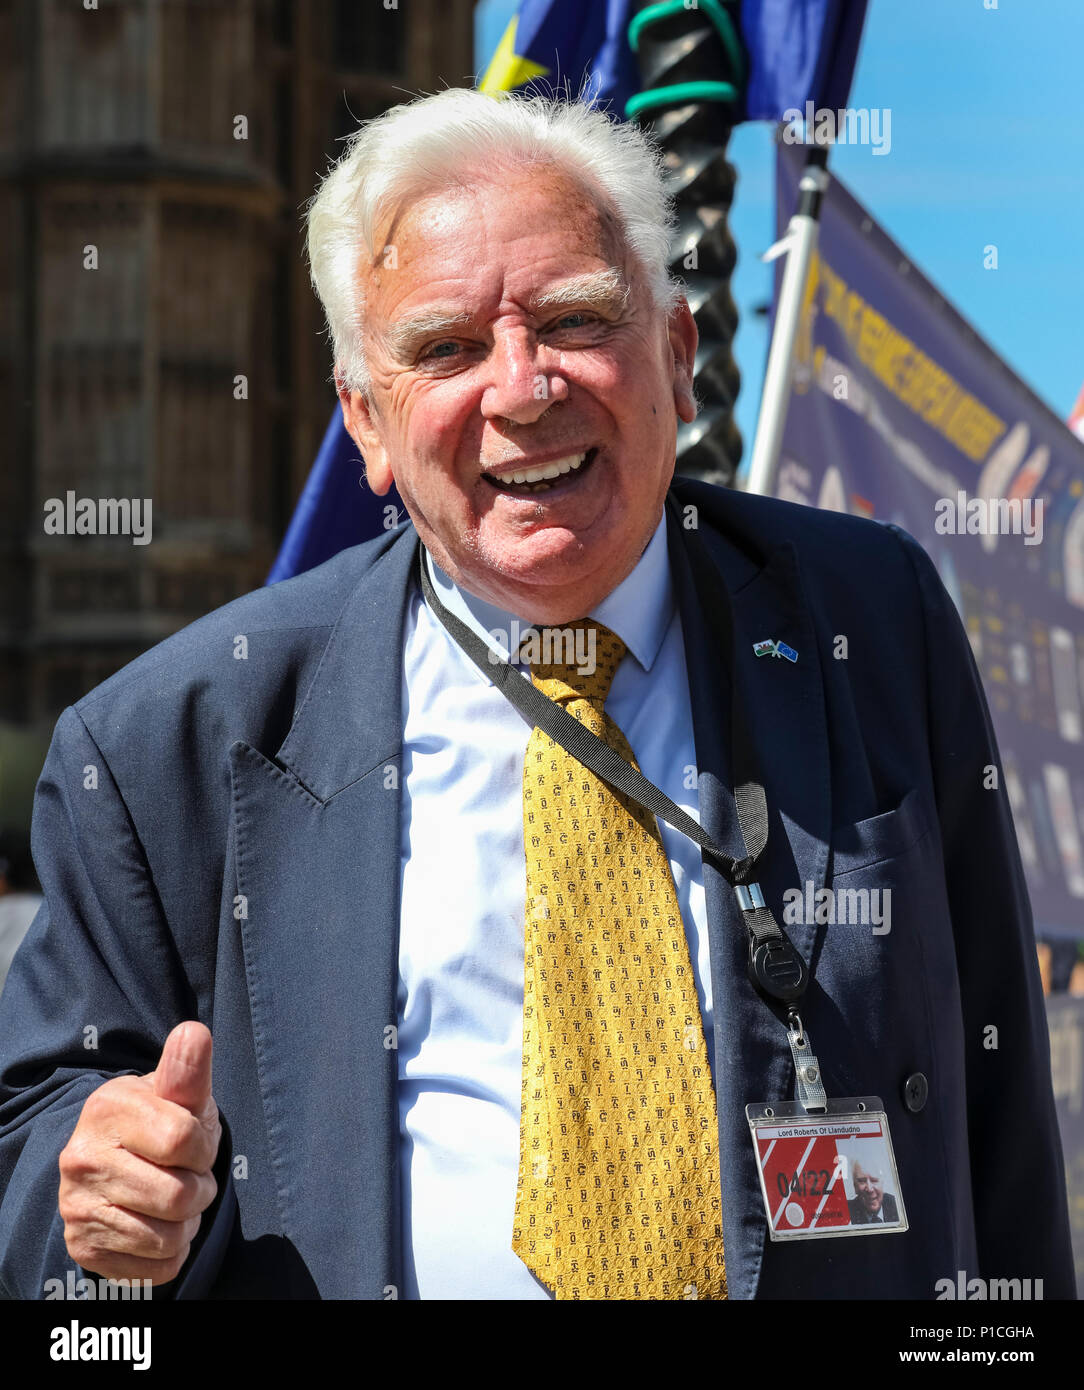 Westminster, London, UK, 11th June 2018. Lib Dem peer Lord Roberts, Baron Roberts of Llandudno, pops by to lend his support. On the day before  MPs are set to start voting on amendments to the EU Withdrawal Bill put forward by the House of Lords, anti-brexit groups stage a 36 hour 'Remainathon' in Westminster. Four different groups, SODEM, No10Vigil, EU Flag Mafia and Stop Brexit hold protests at Parliament, a vigil at Downing Street and a torch lit evening march and sleepover to the Royal Courts of Justice. Credit: Imageplotter News and Sports/Alamy Live News - Stock Image